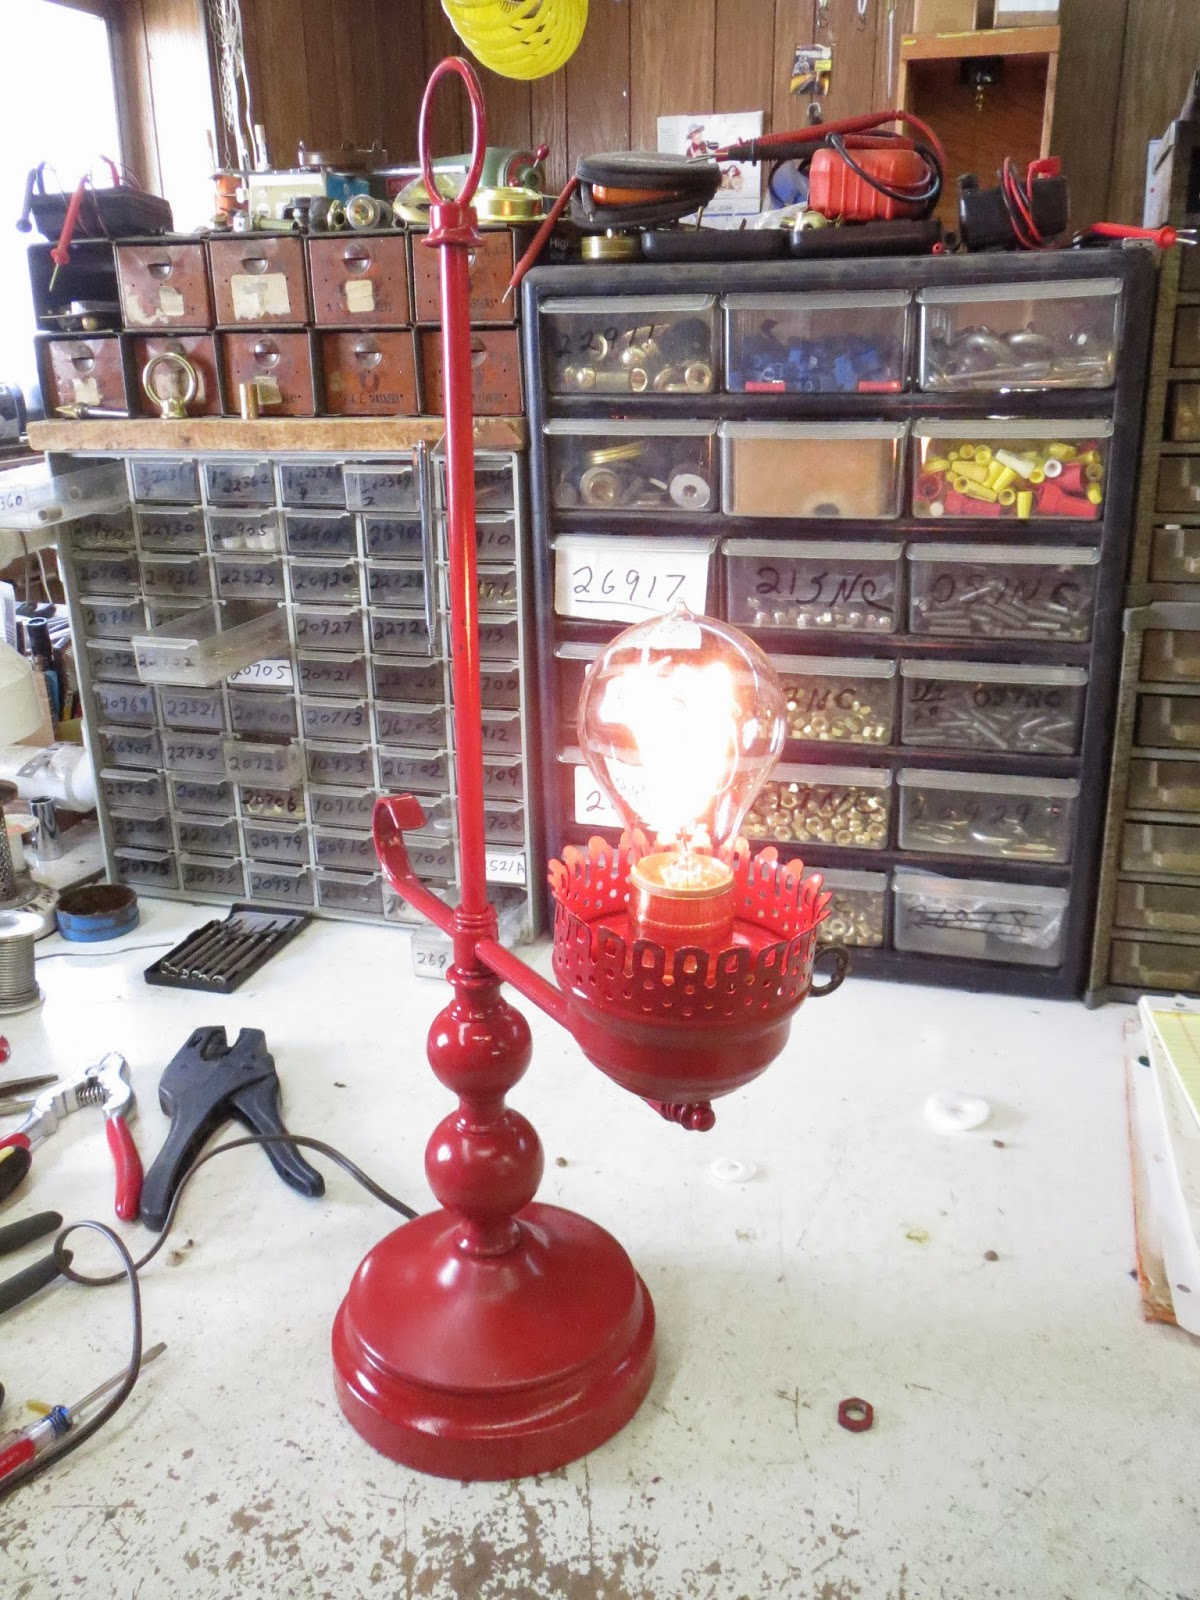 Lamp parts and repair lamp doctor red table lamp with arm gets lamp parts and repair lamp doctor red table lamp with arm gets rewired keyboard keysfo Image collections